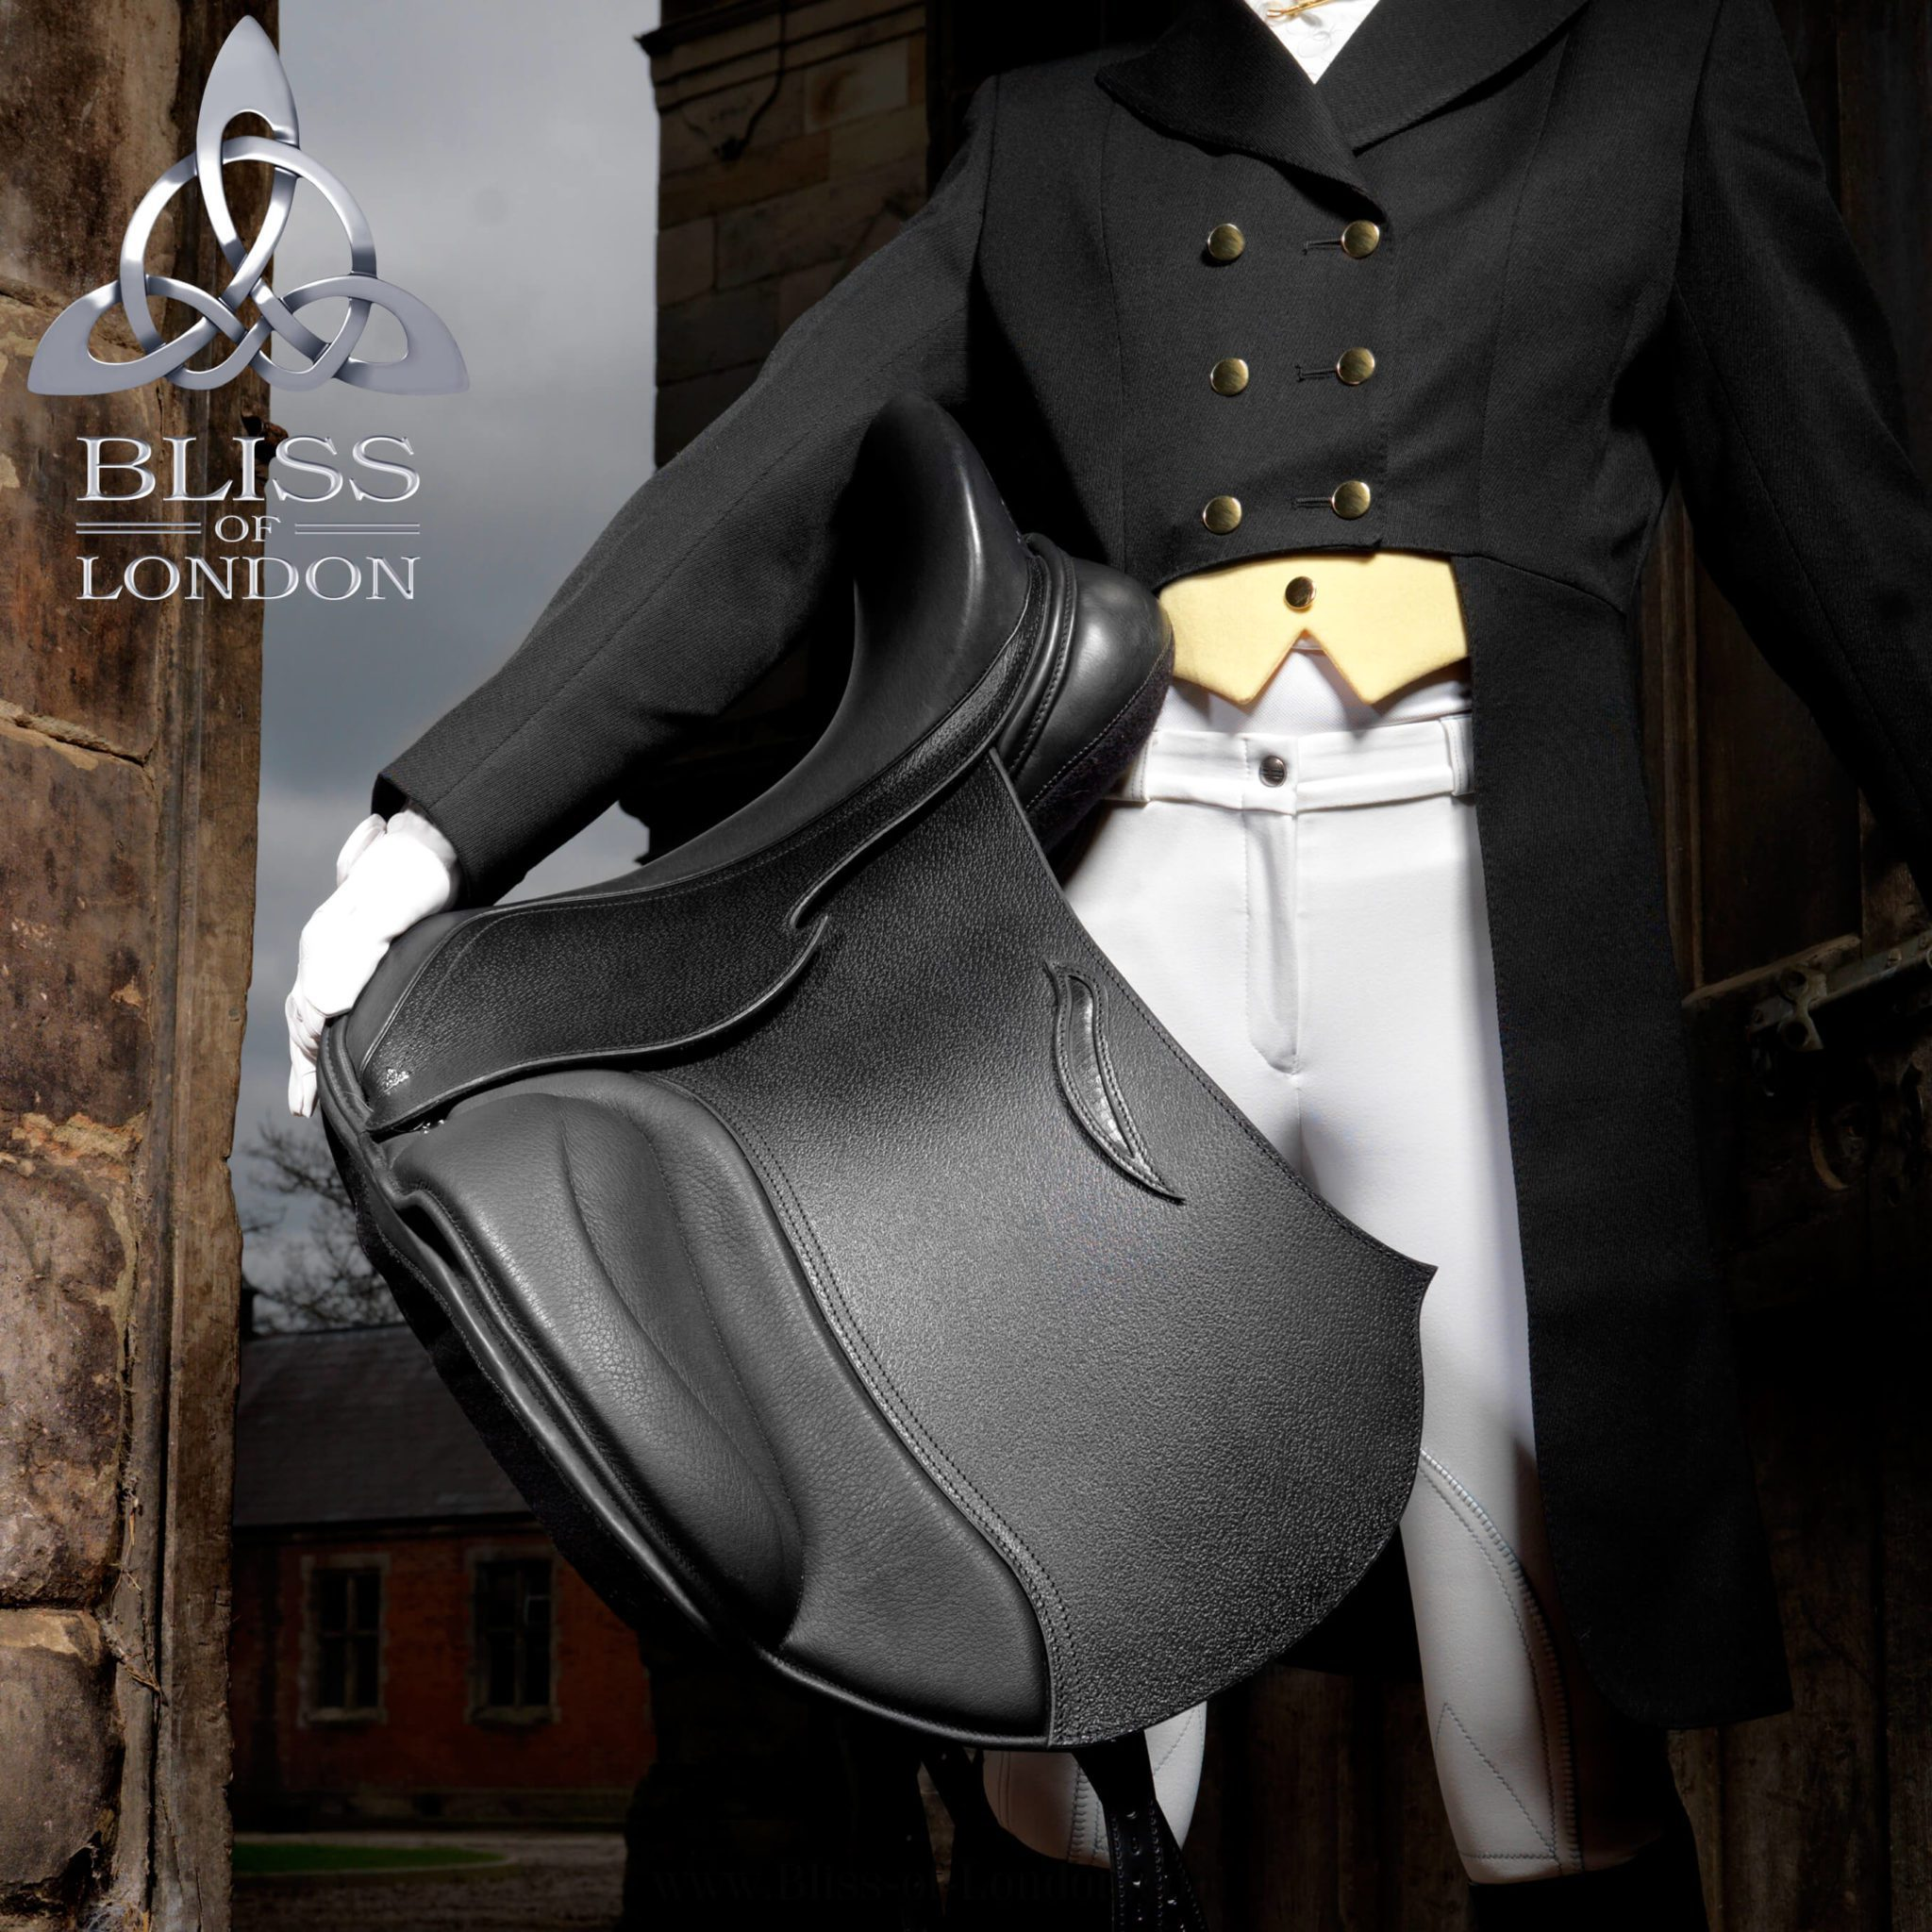 2 Bliss Regency Dressage Lifestyle shot